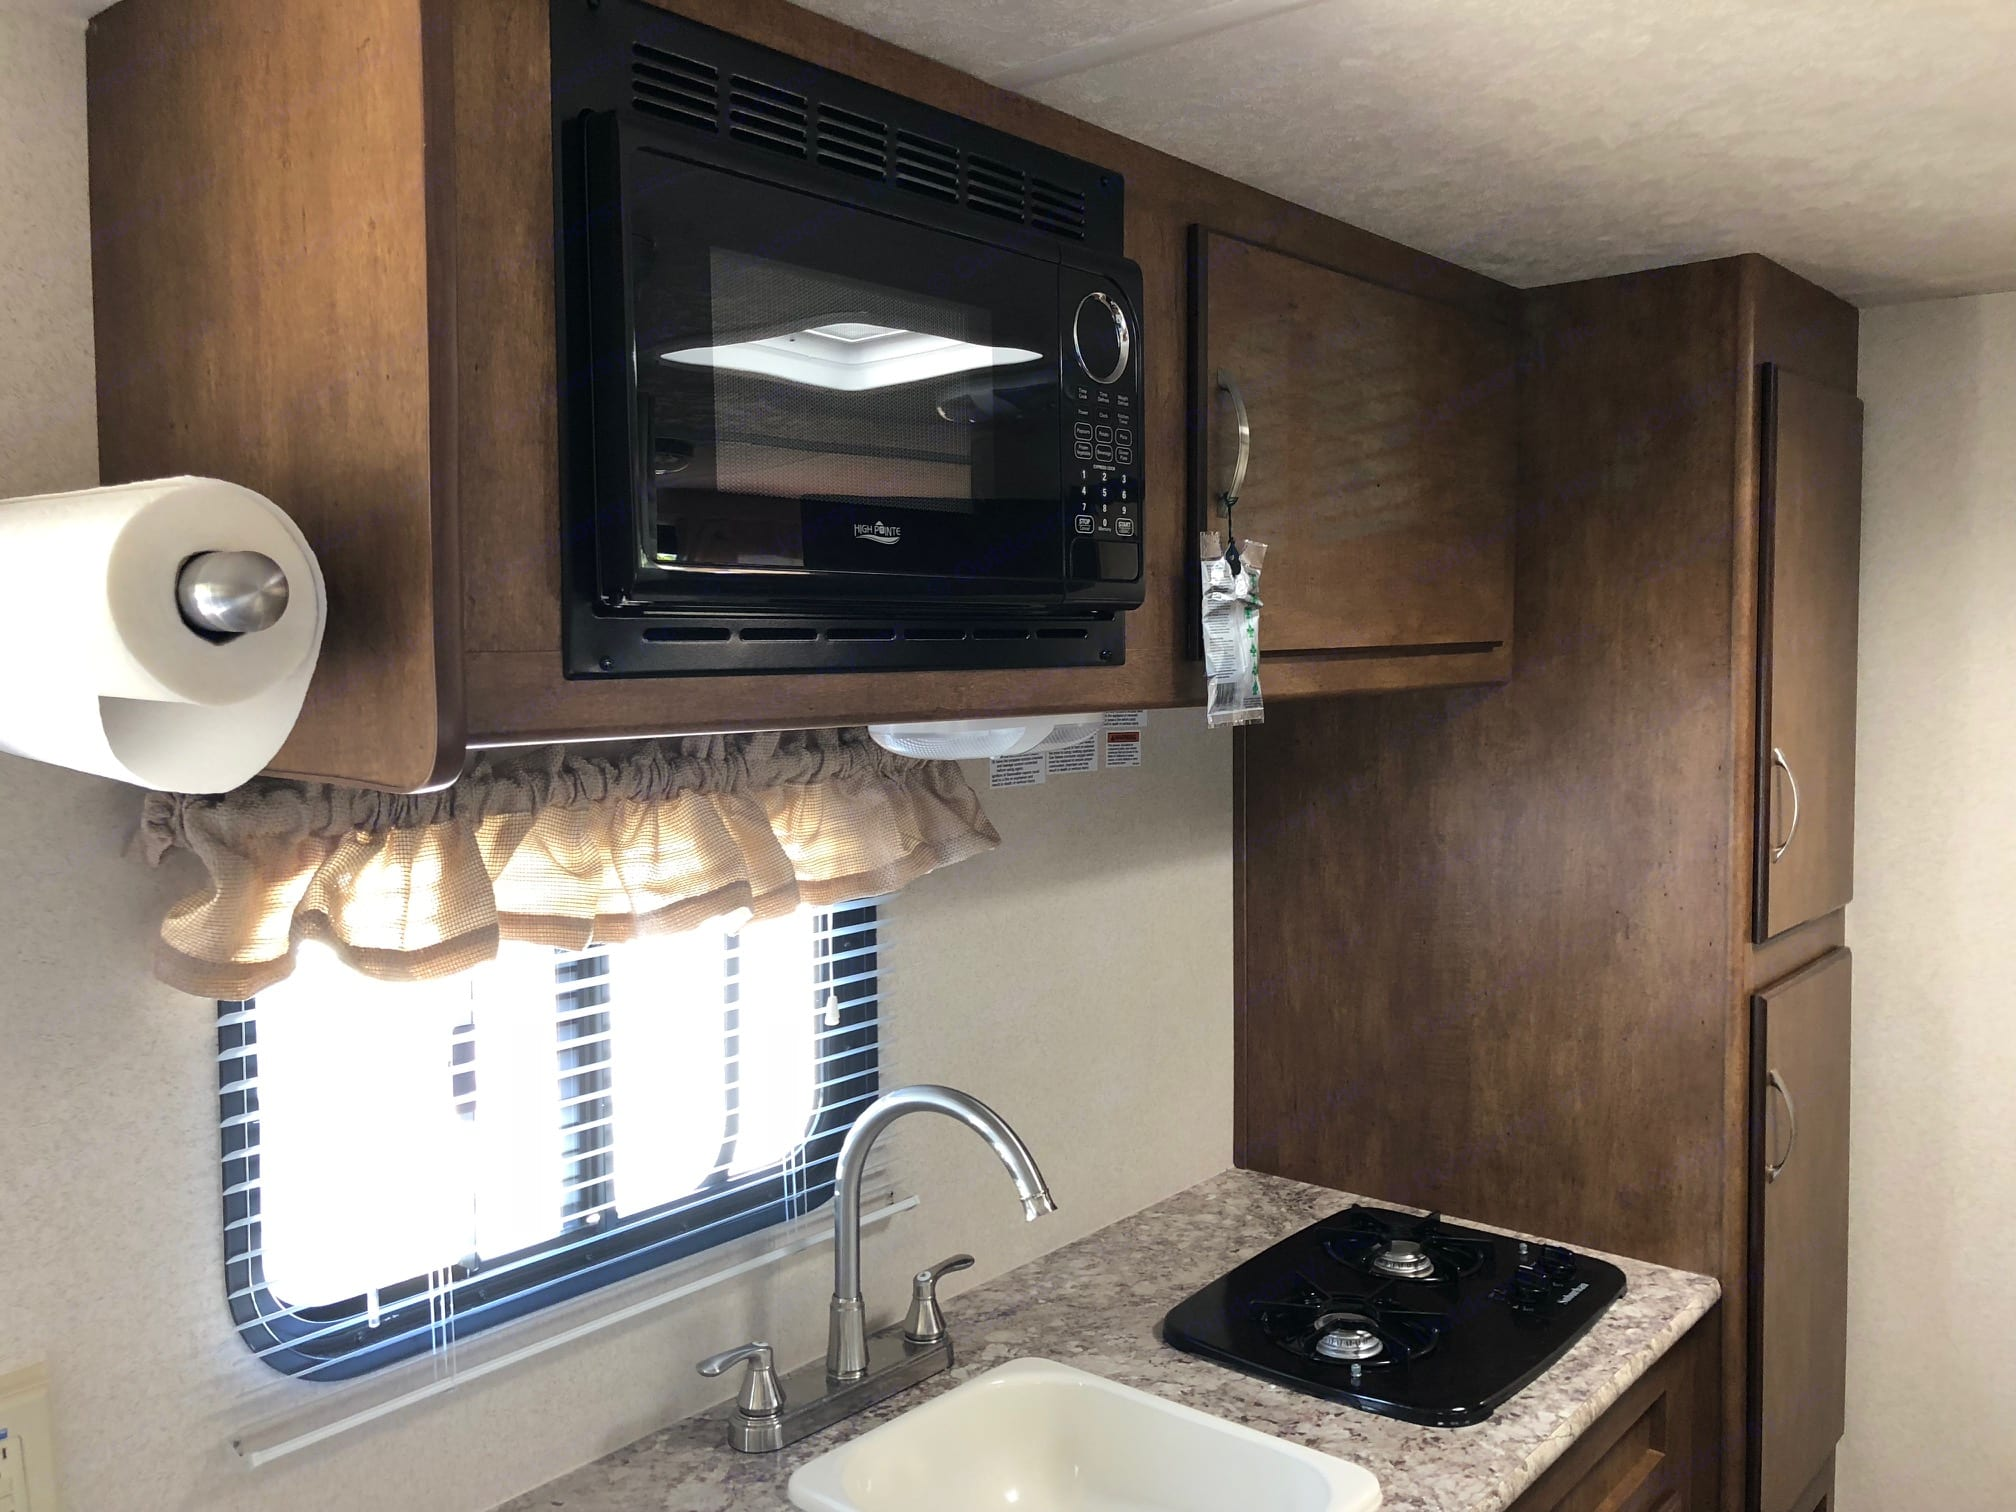 Microwave and storage cabinets. Forest River Salem Cruise Lite 2018